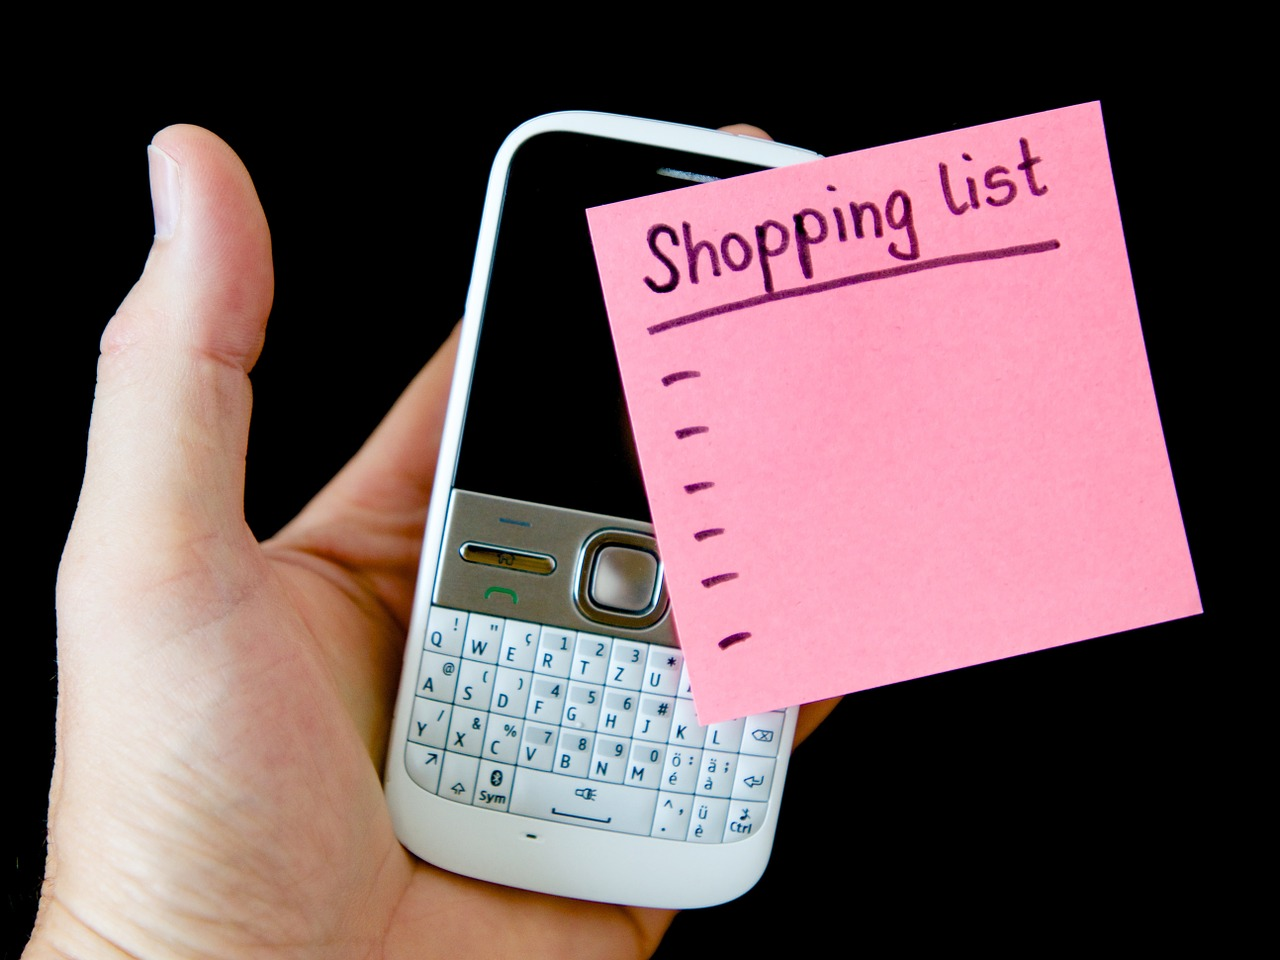 Hand Mobile Note List Embassy  - 422737 / Pixabay